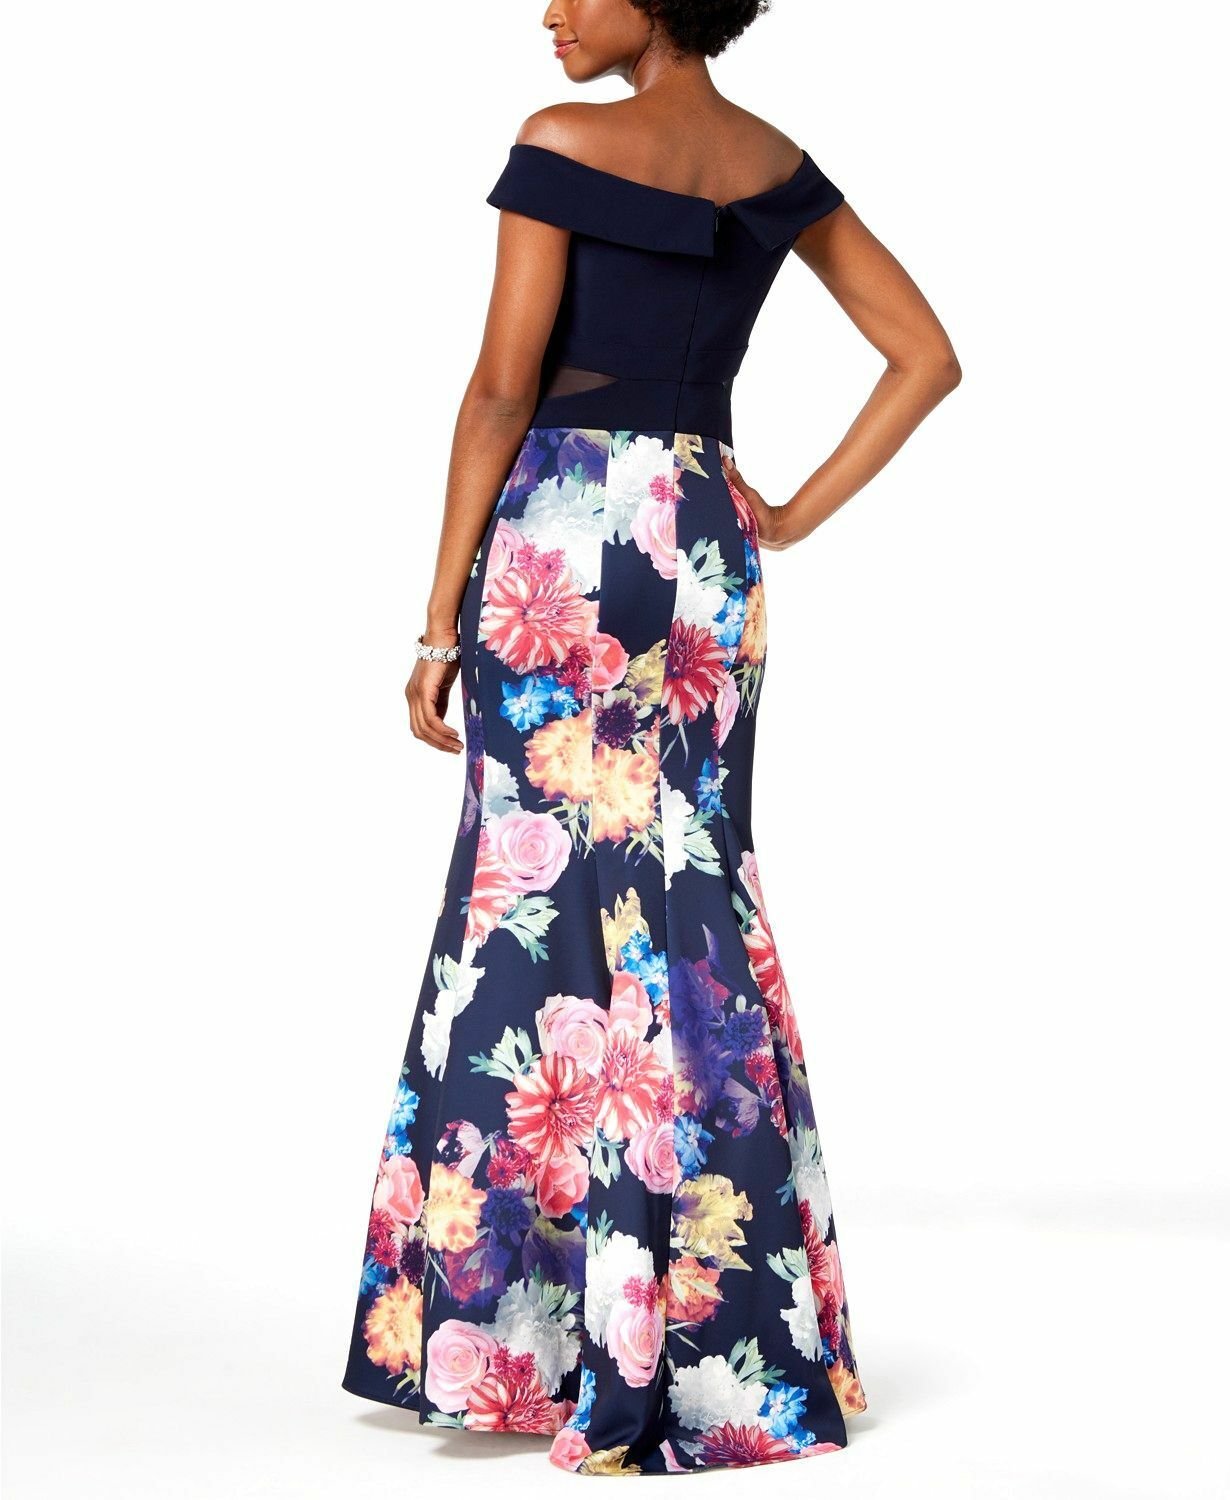 430 XSCAPE WOMENS blueE PINK YELLOW FLORAL SWEETHEART GOWN MERMAID DRESS SIZE 6P